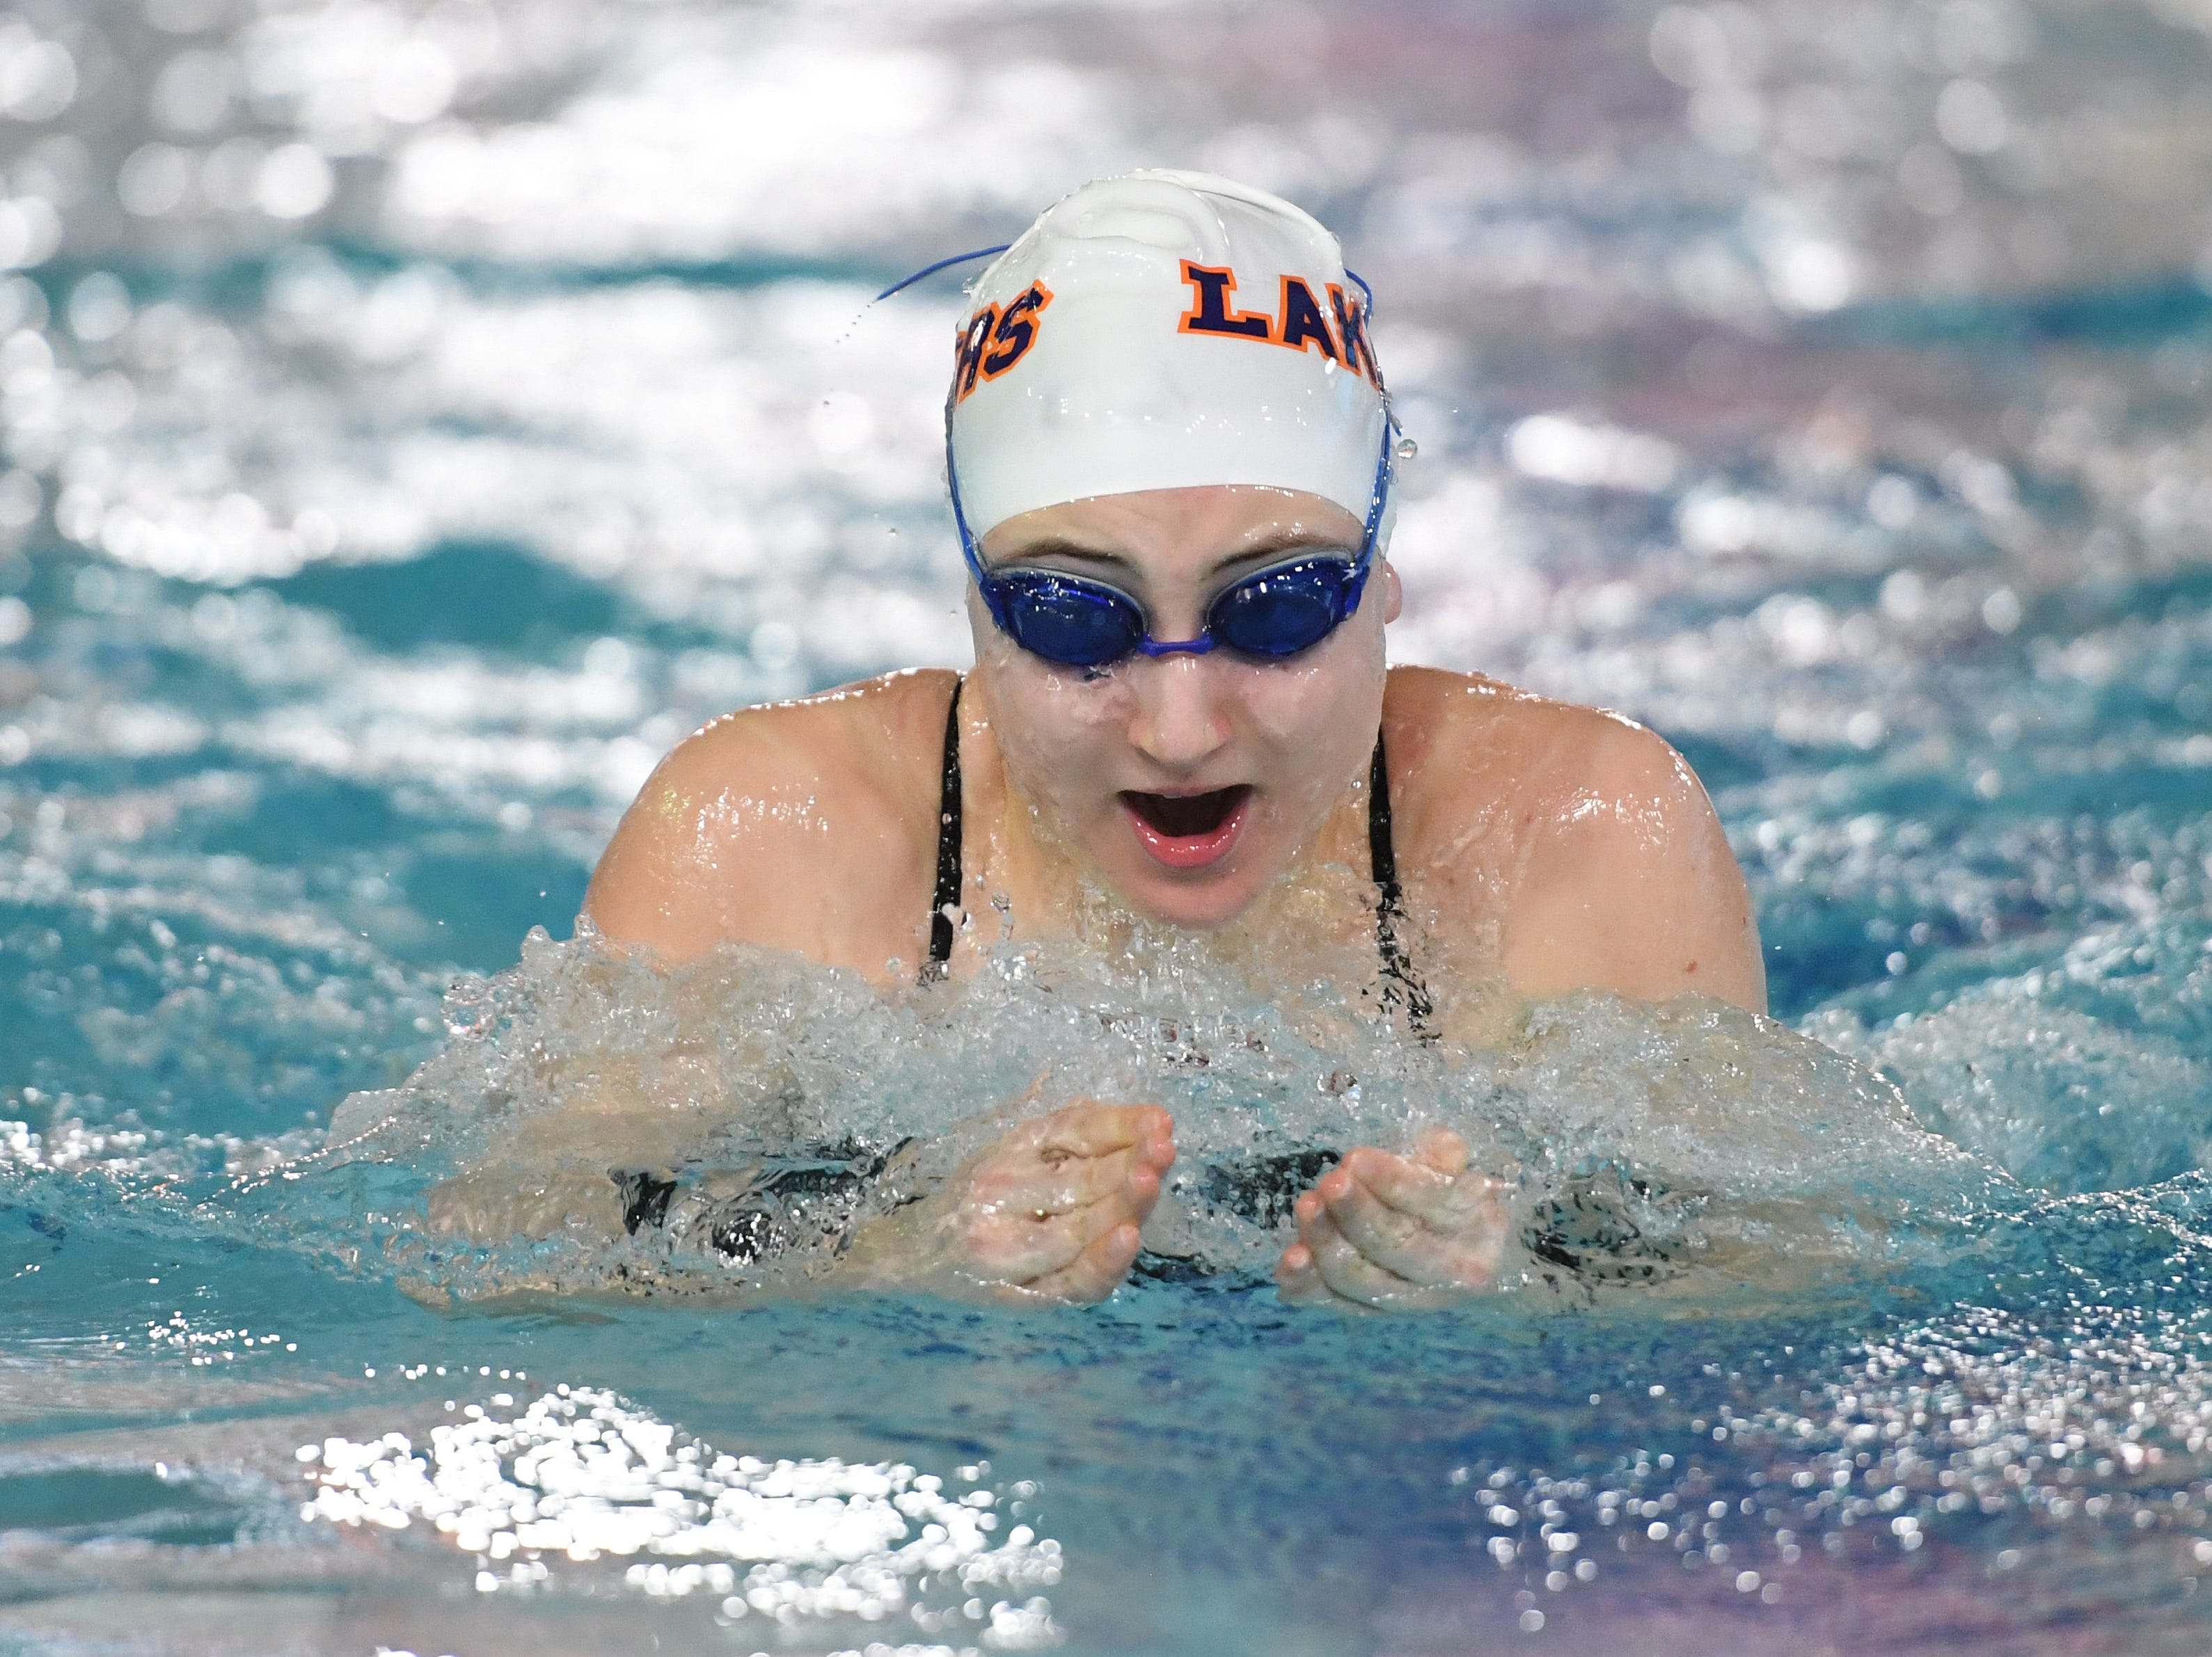 NJSIAA swimming sectional finals: Mountain Lakes vs Kinnelon in North I-C at Passaic County Technical Institute on Friday, February 15, 2019. Kaylee Smith, of Mountain Lakes, in the 200 Medley Relay.